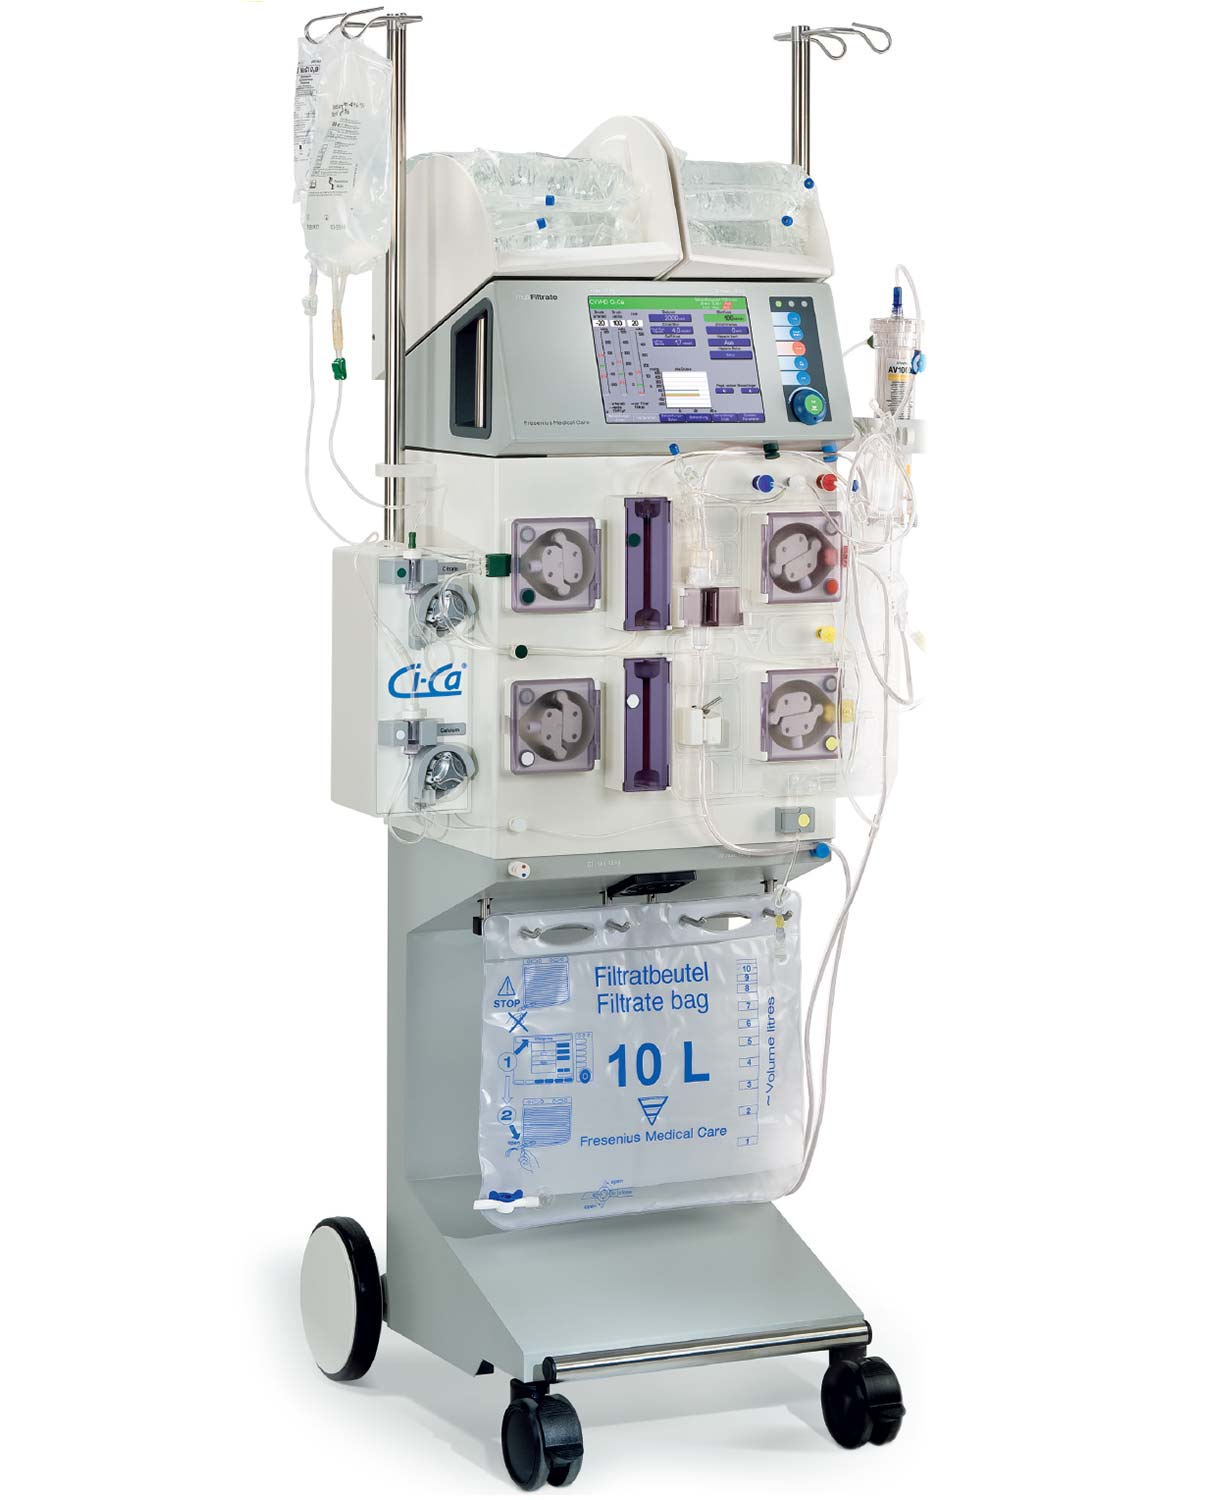 multiFiltrate acute therapy machine with Ci-Ca® module